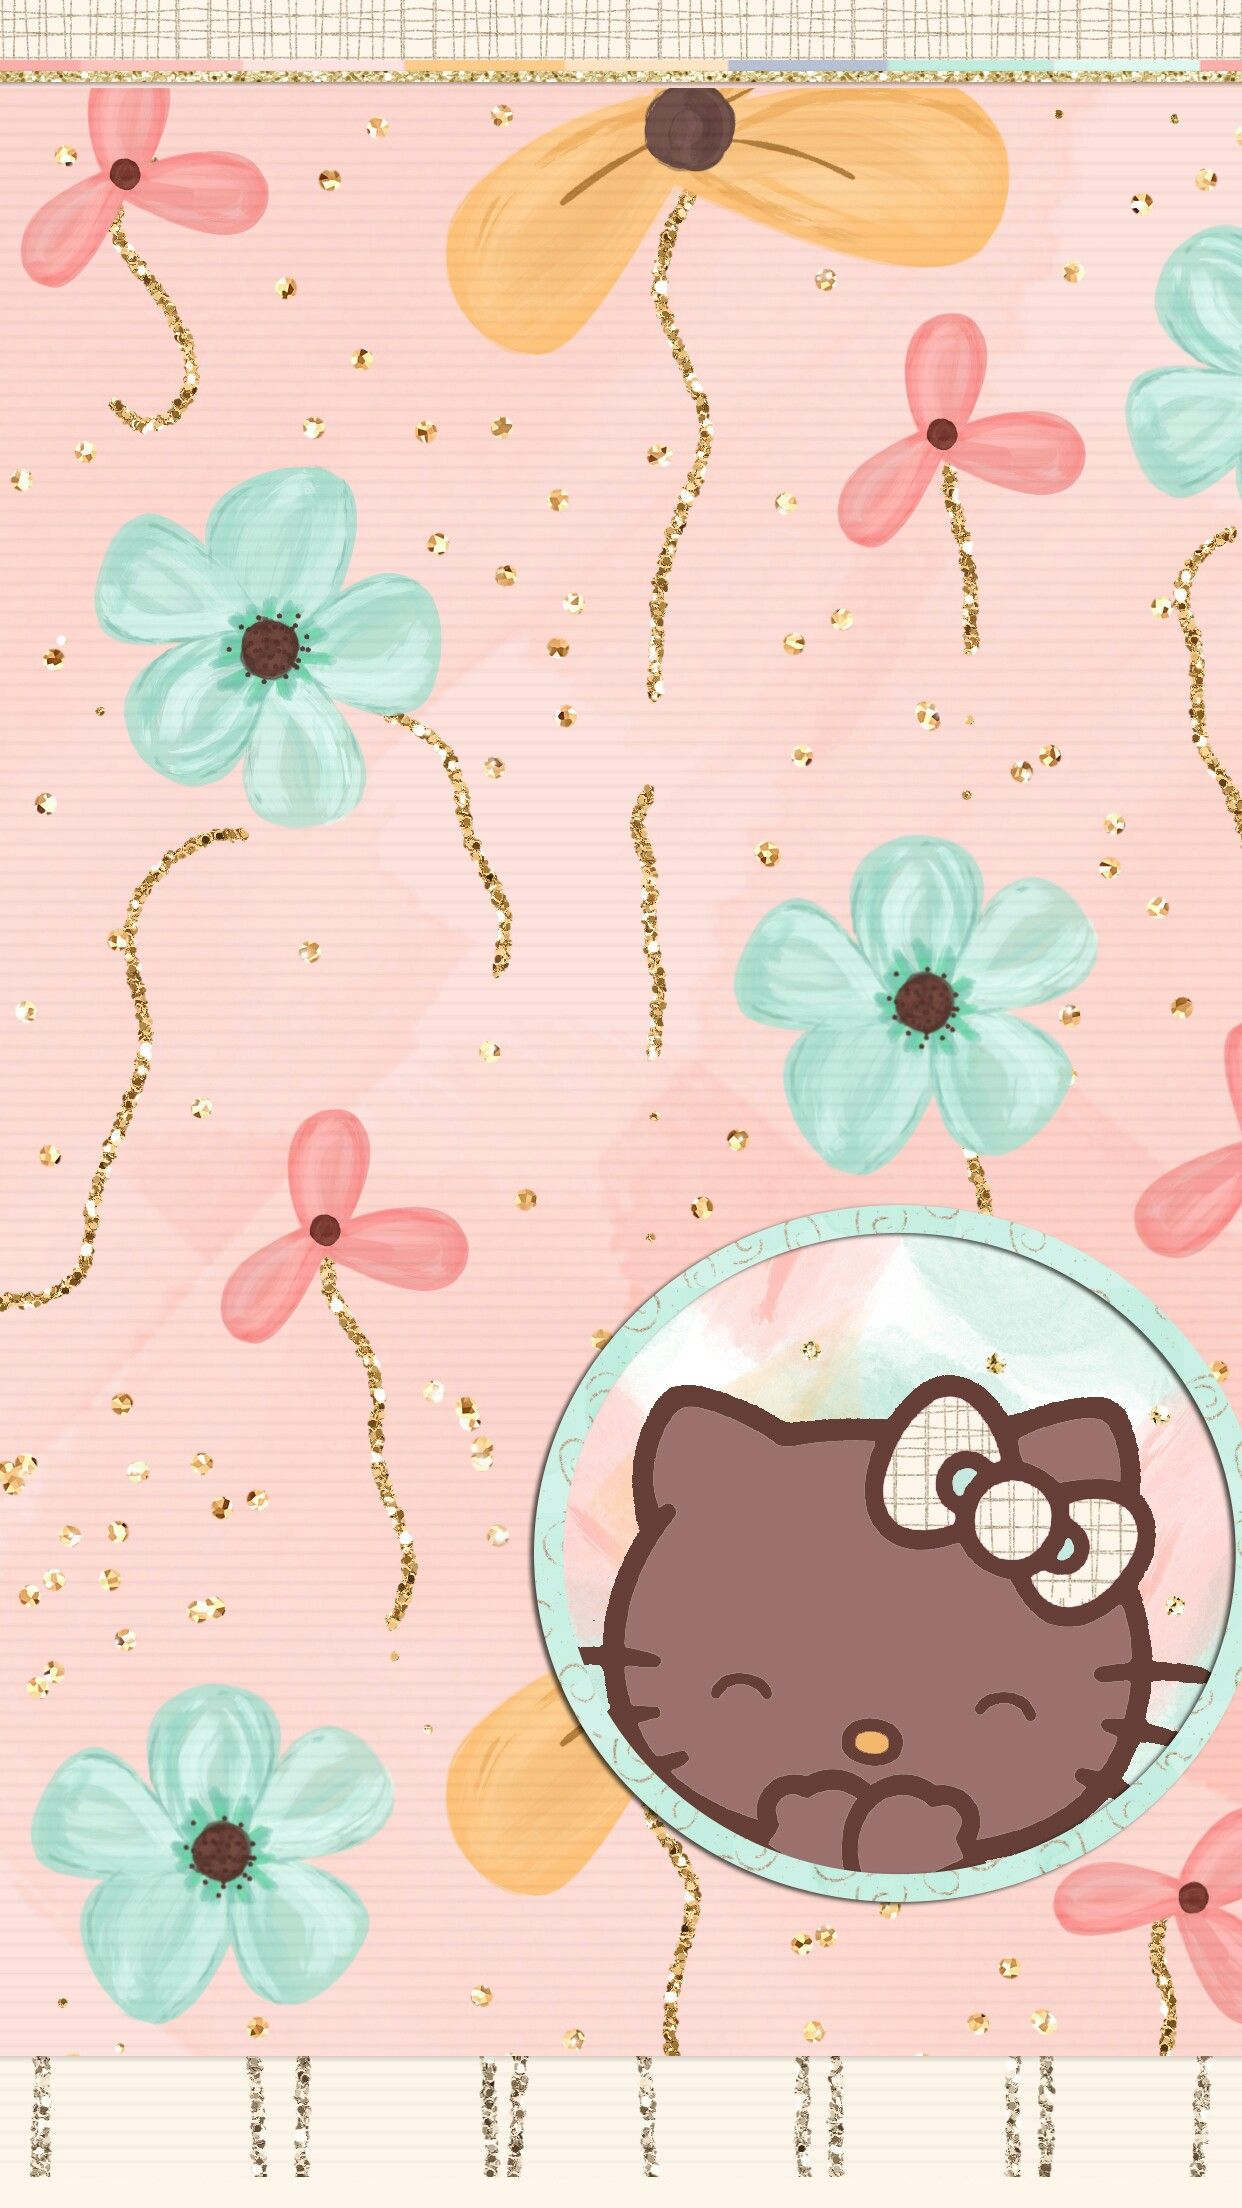 Pin By Maneerut Kutthaworn On My Uploads Evies Pretty Walls Hello Kitty Backgrounds Hello Kitty Pictures Hello Kitty Wallpaper